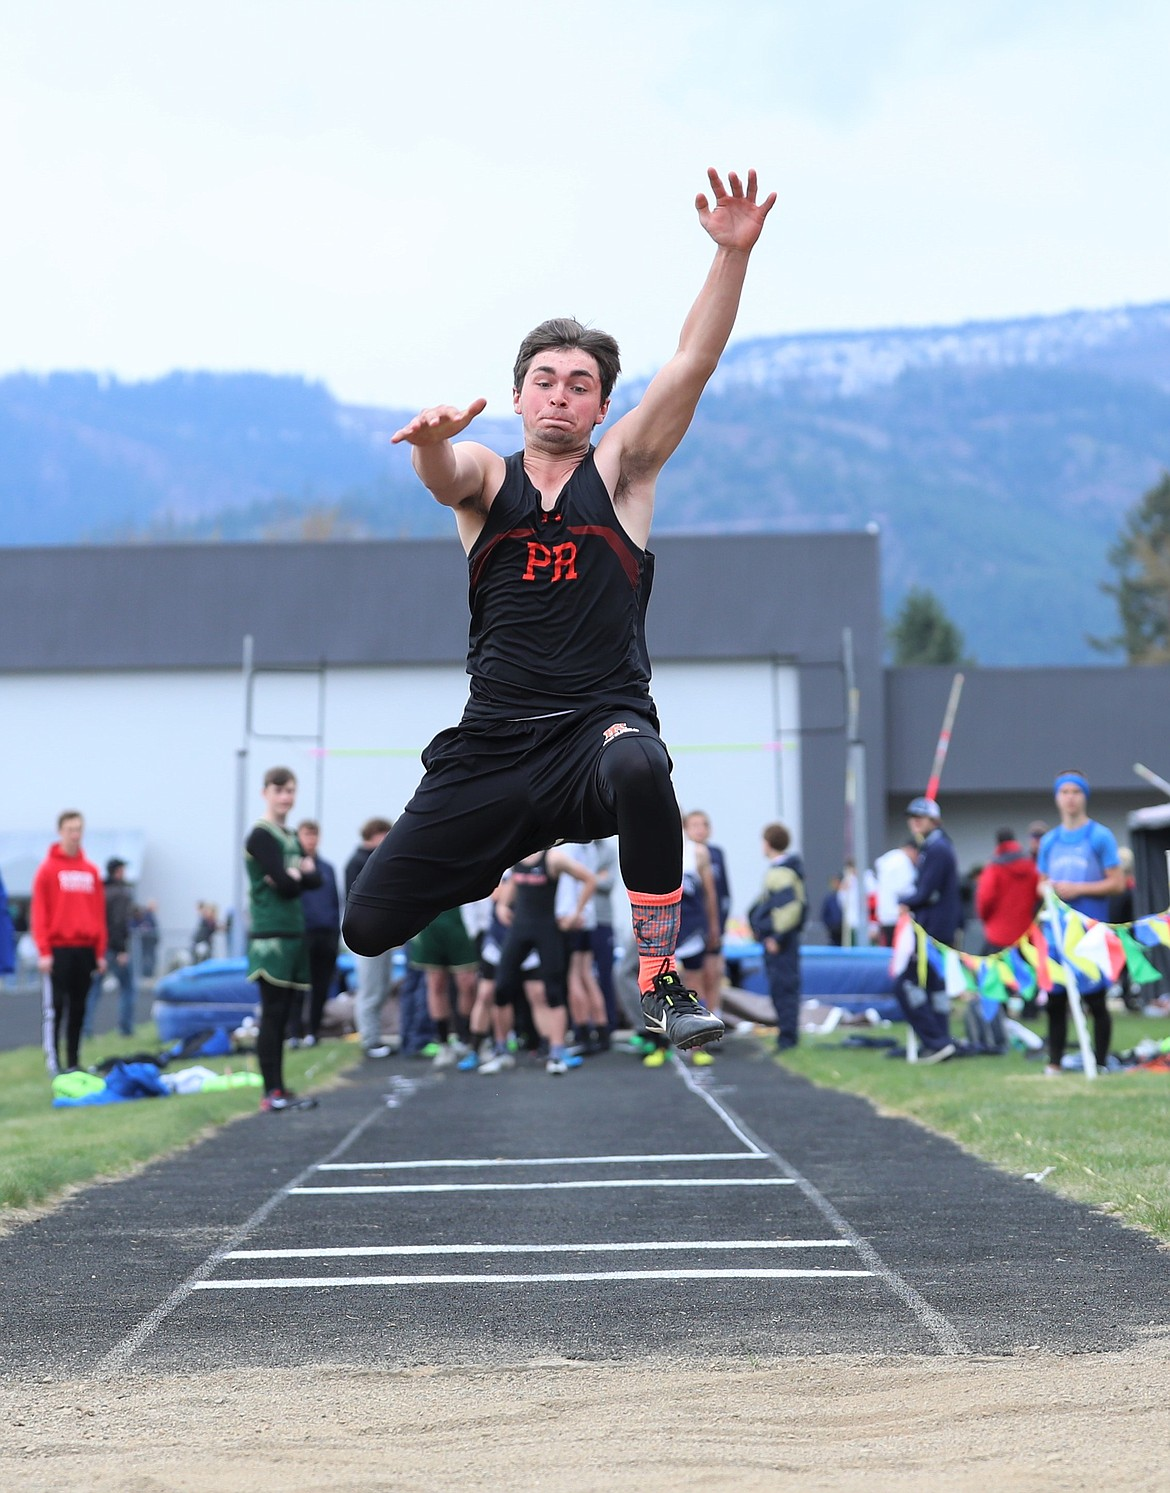 Joey Hayes leaps into the pit in the long jump.